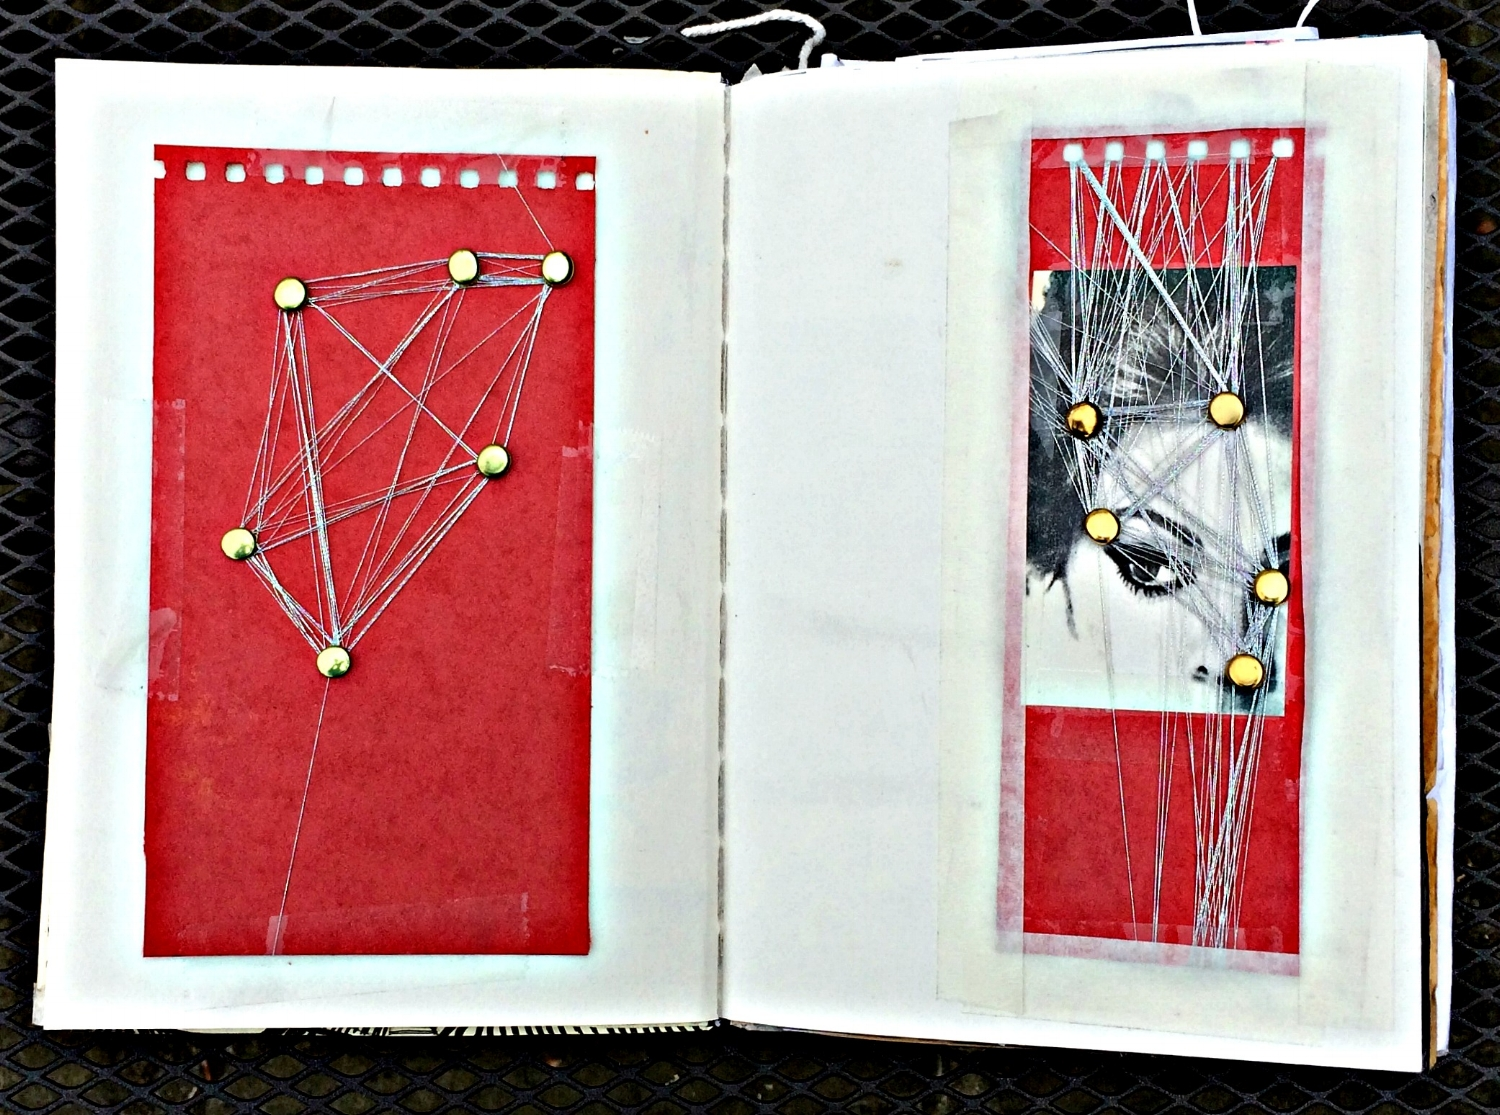 Sketchbook: playing with threads